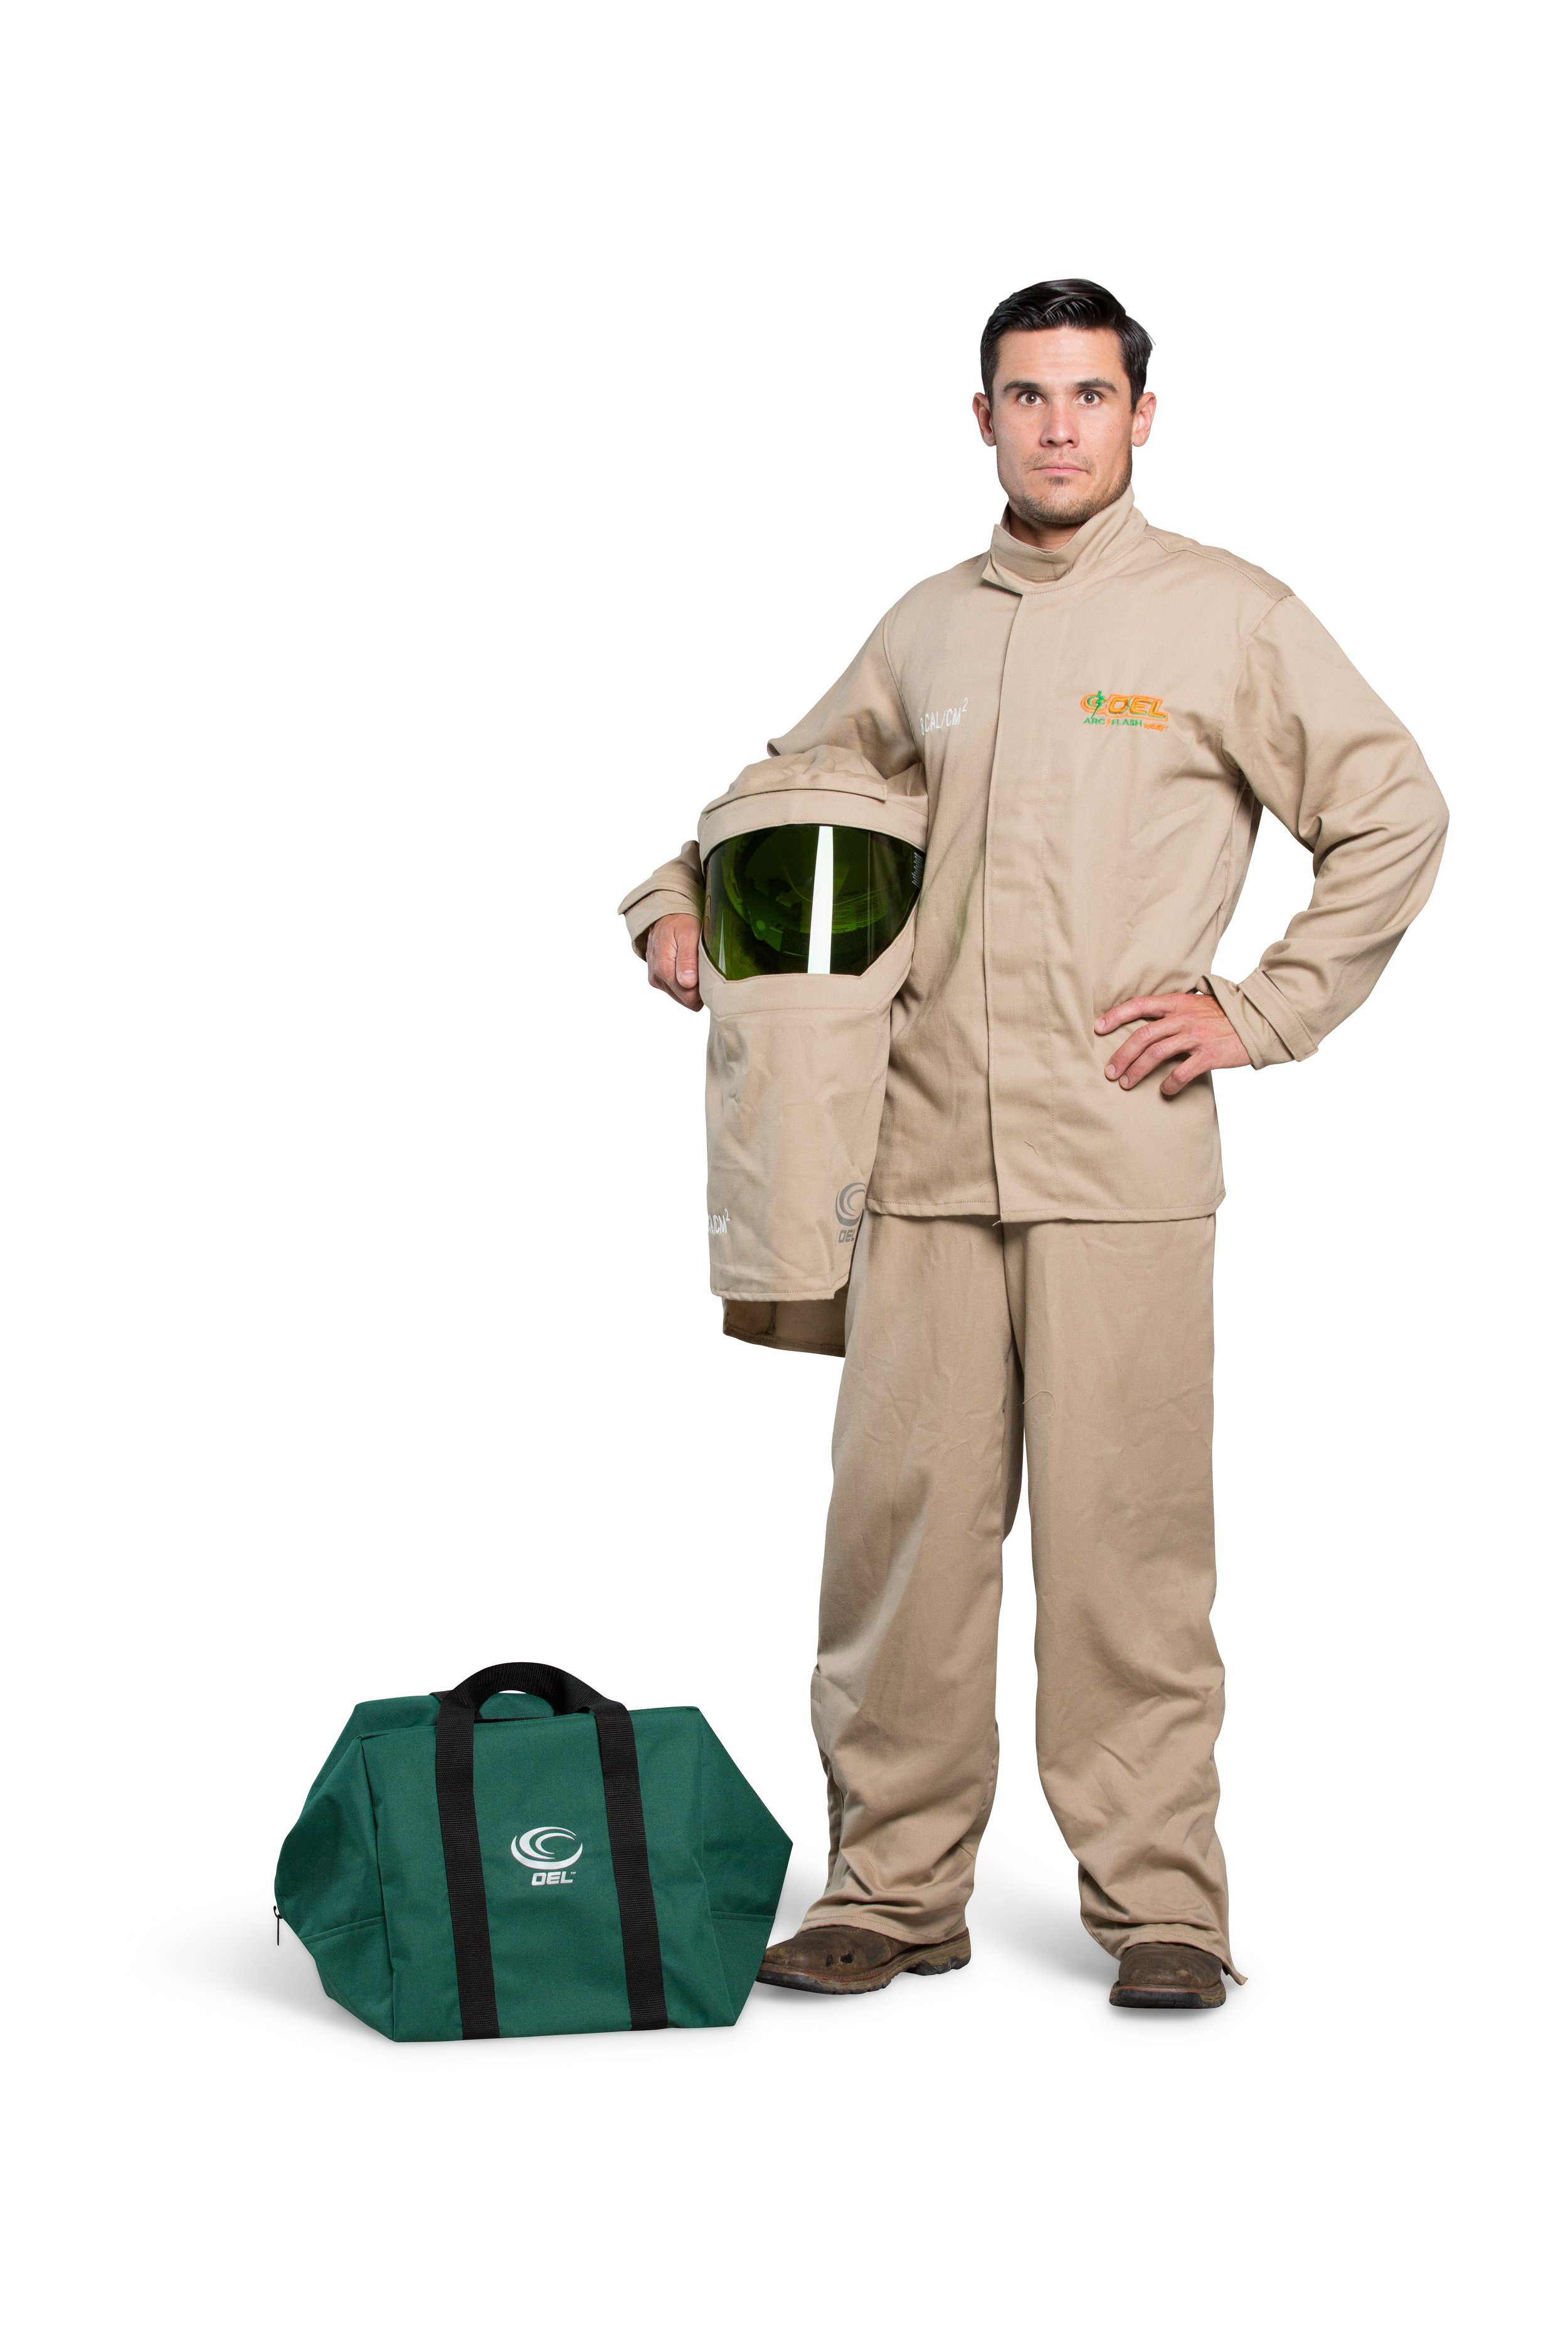 8 Cal Jacket and Bib Kit with SwtichGear Hood